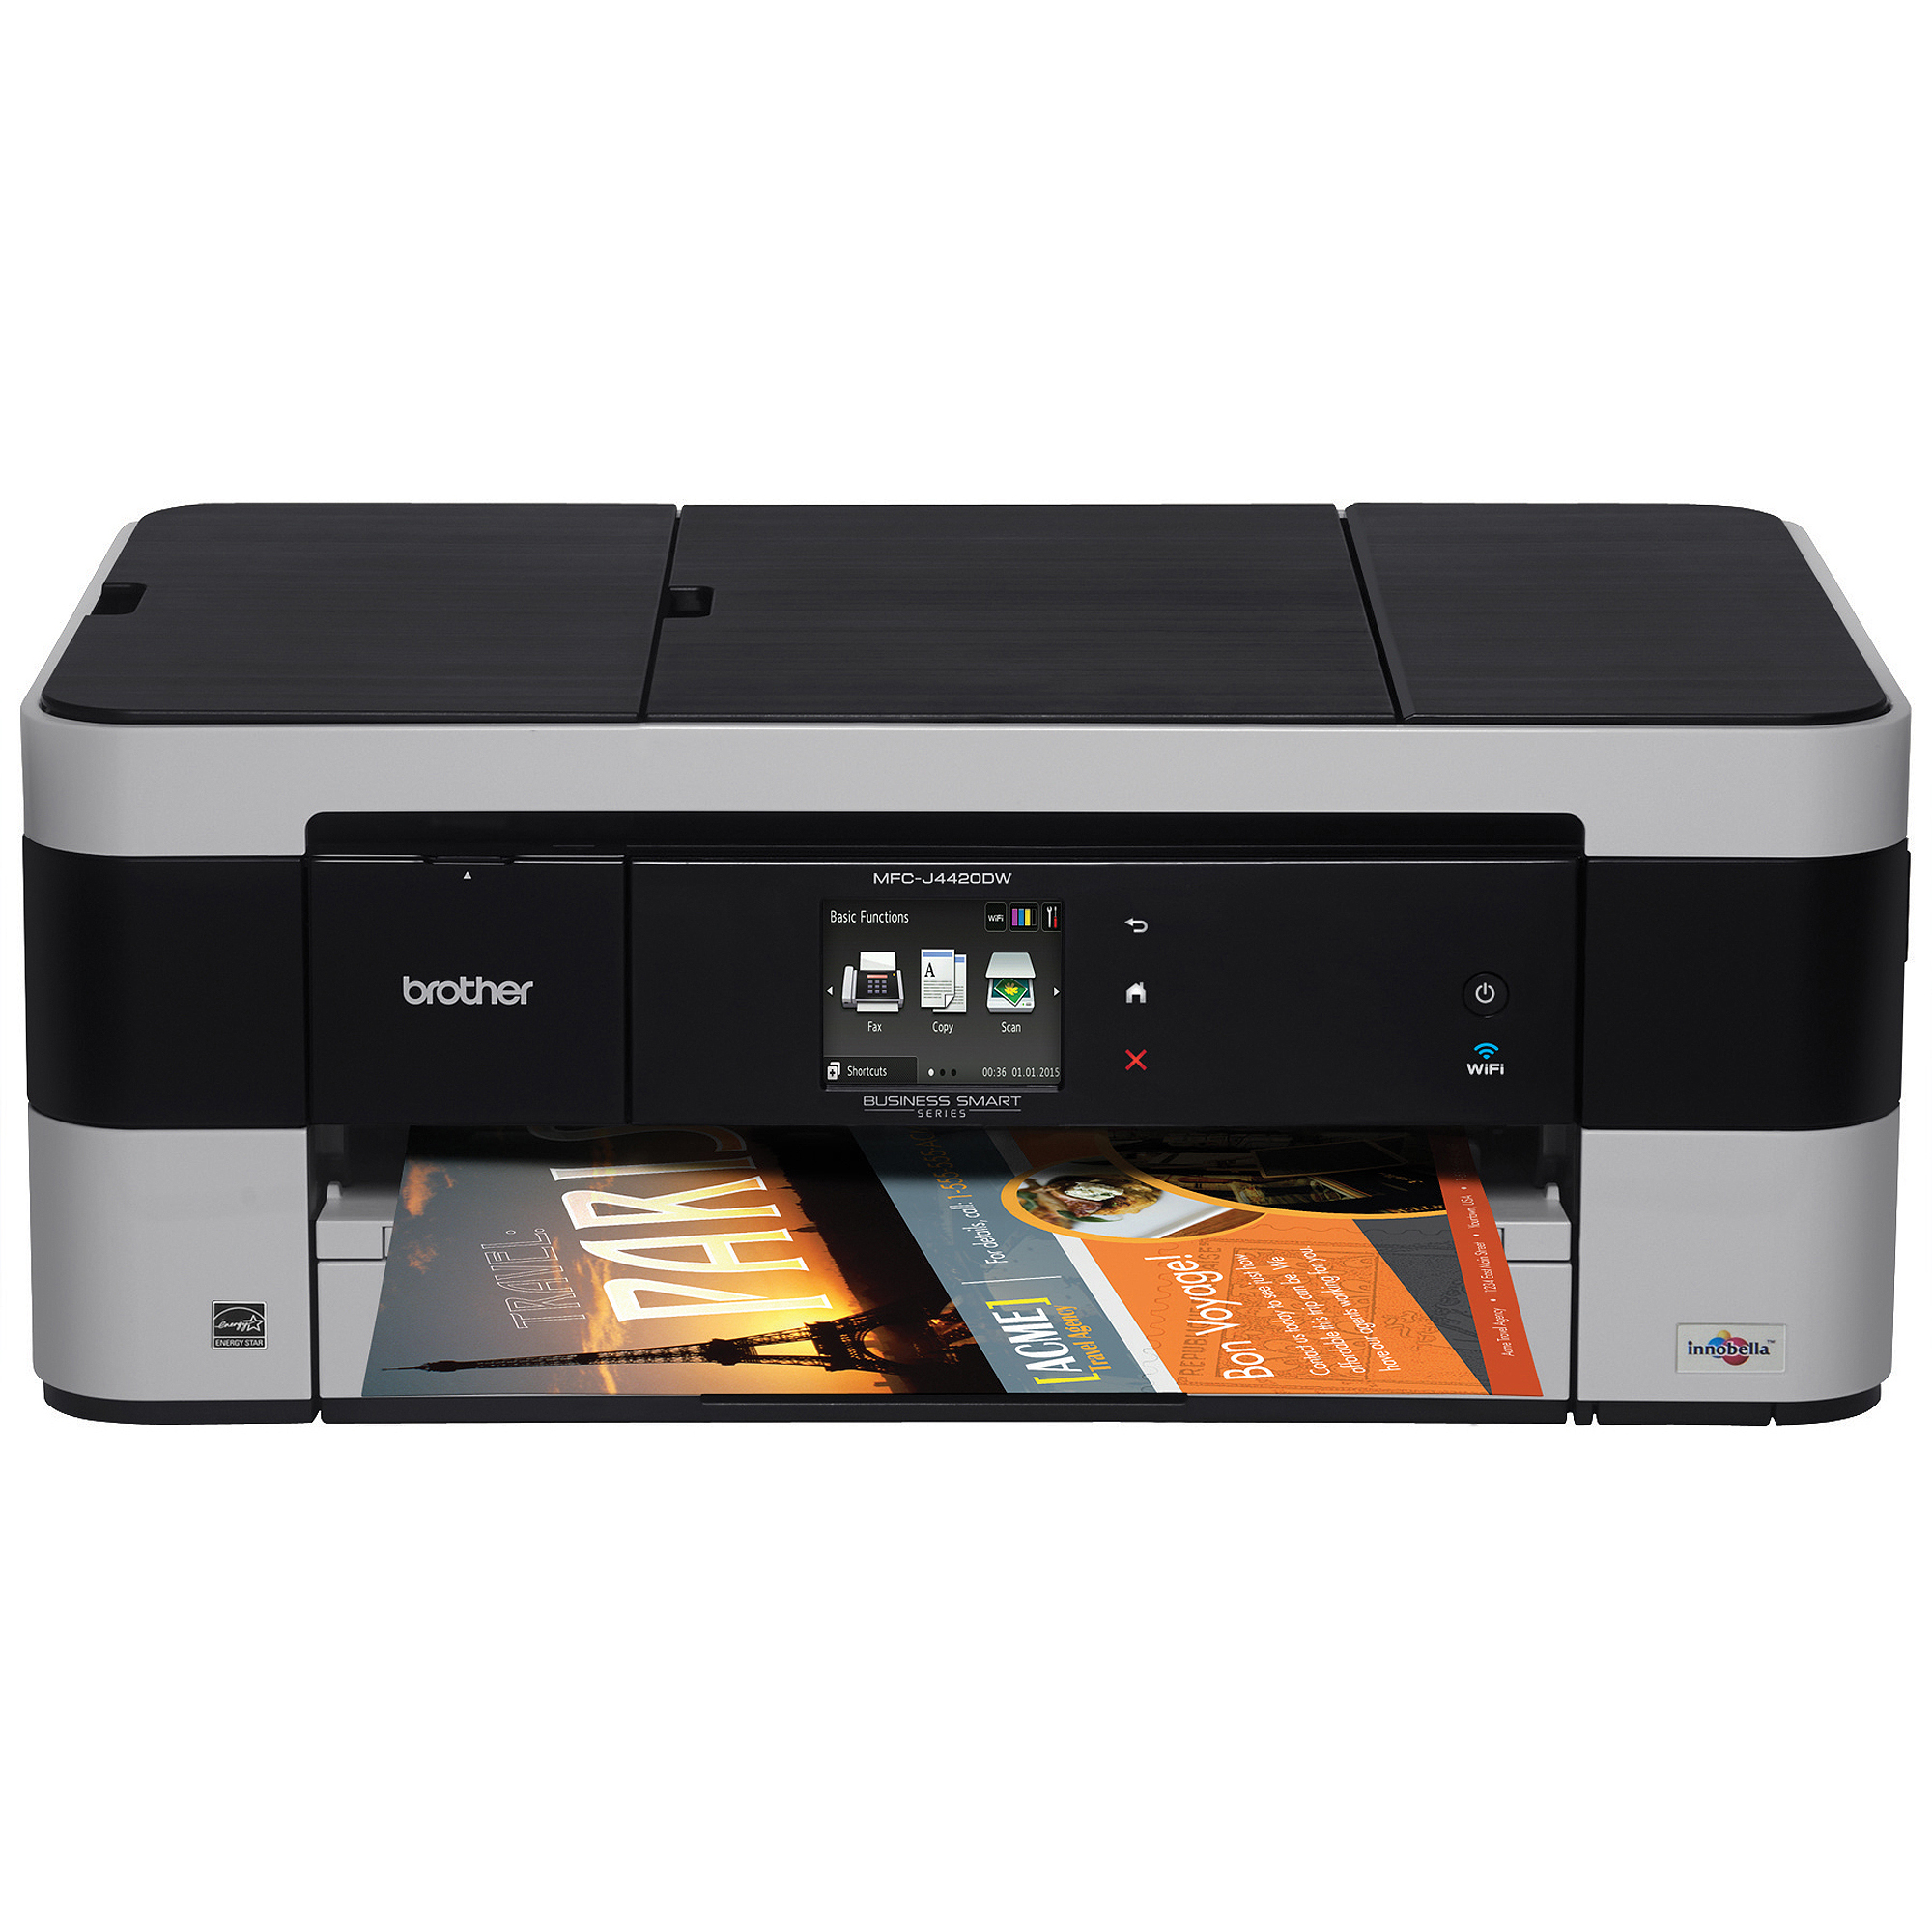 Brother MFC-J4420DW Business Smart Inkjet All-in-One Printer/Copier/Scanner/Fax Machine